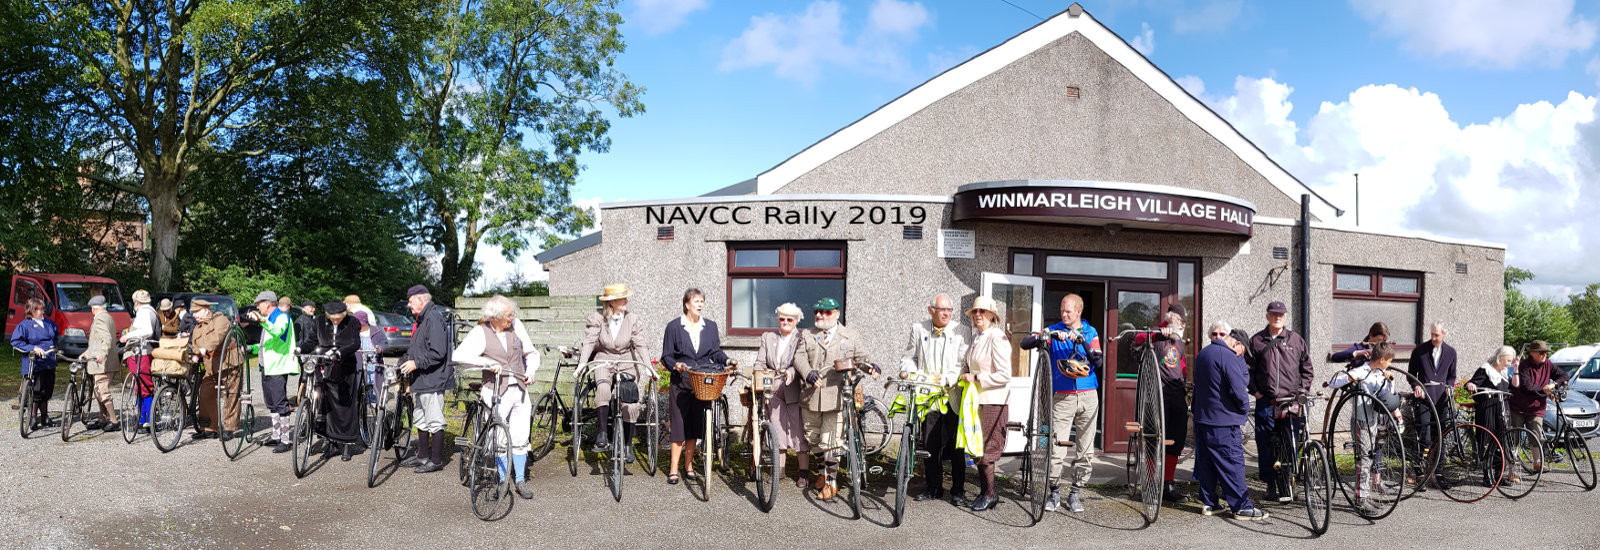 THE NATIONAL ASSOCIATION OF VETERAN CYCLE CLUBS